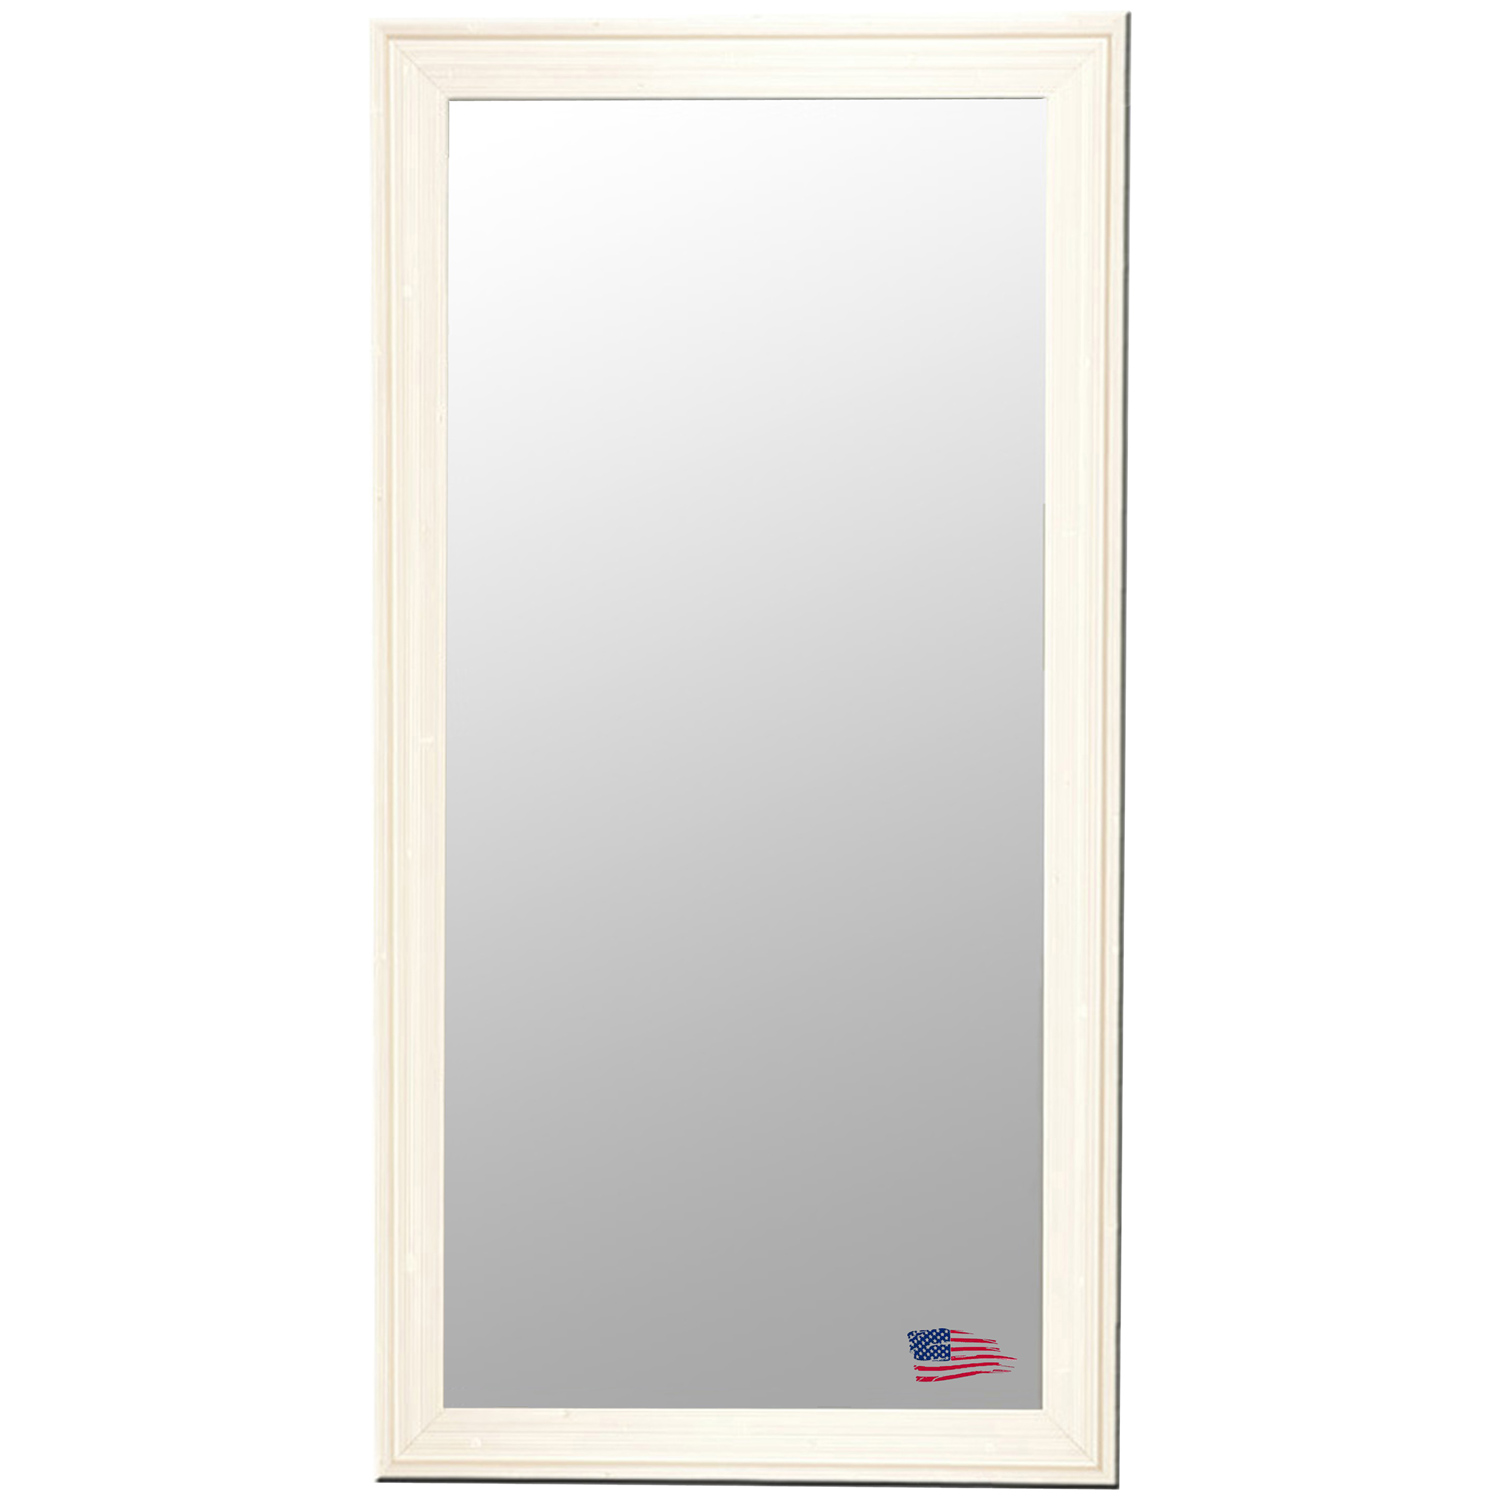 Rectangular Mirror - Barnwood White & Cream Frame